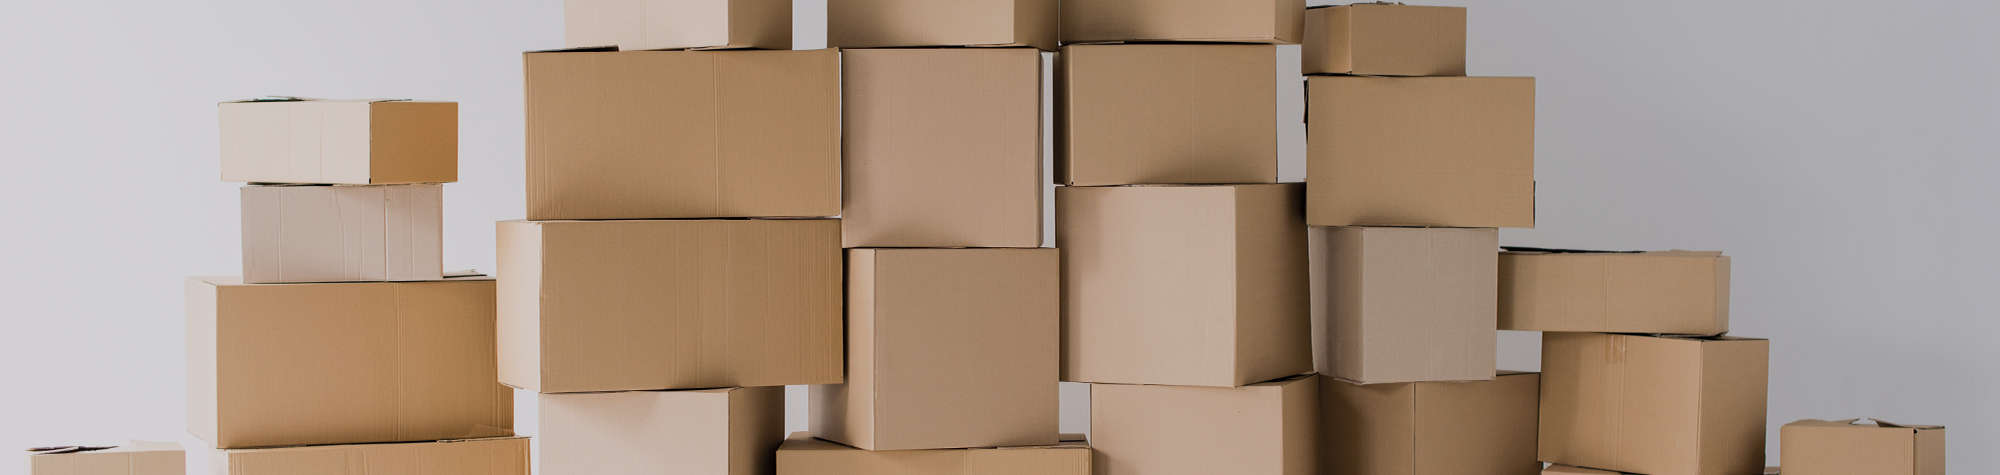 Dealing with seasonal stock and keeping your stockroom safe